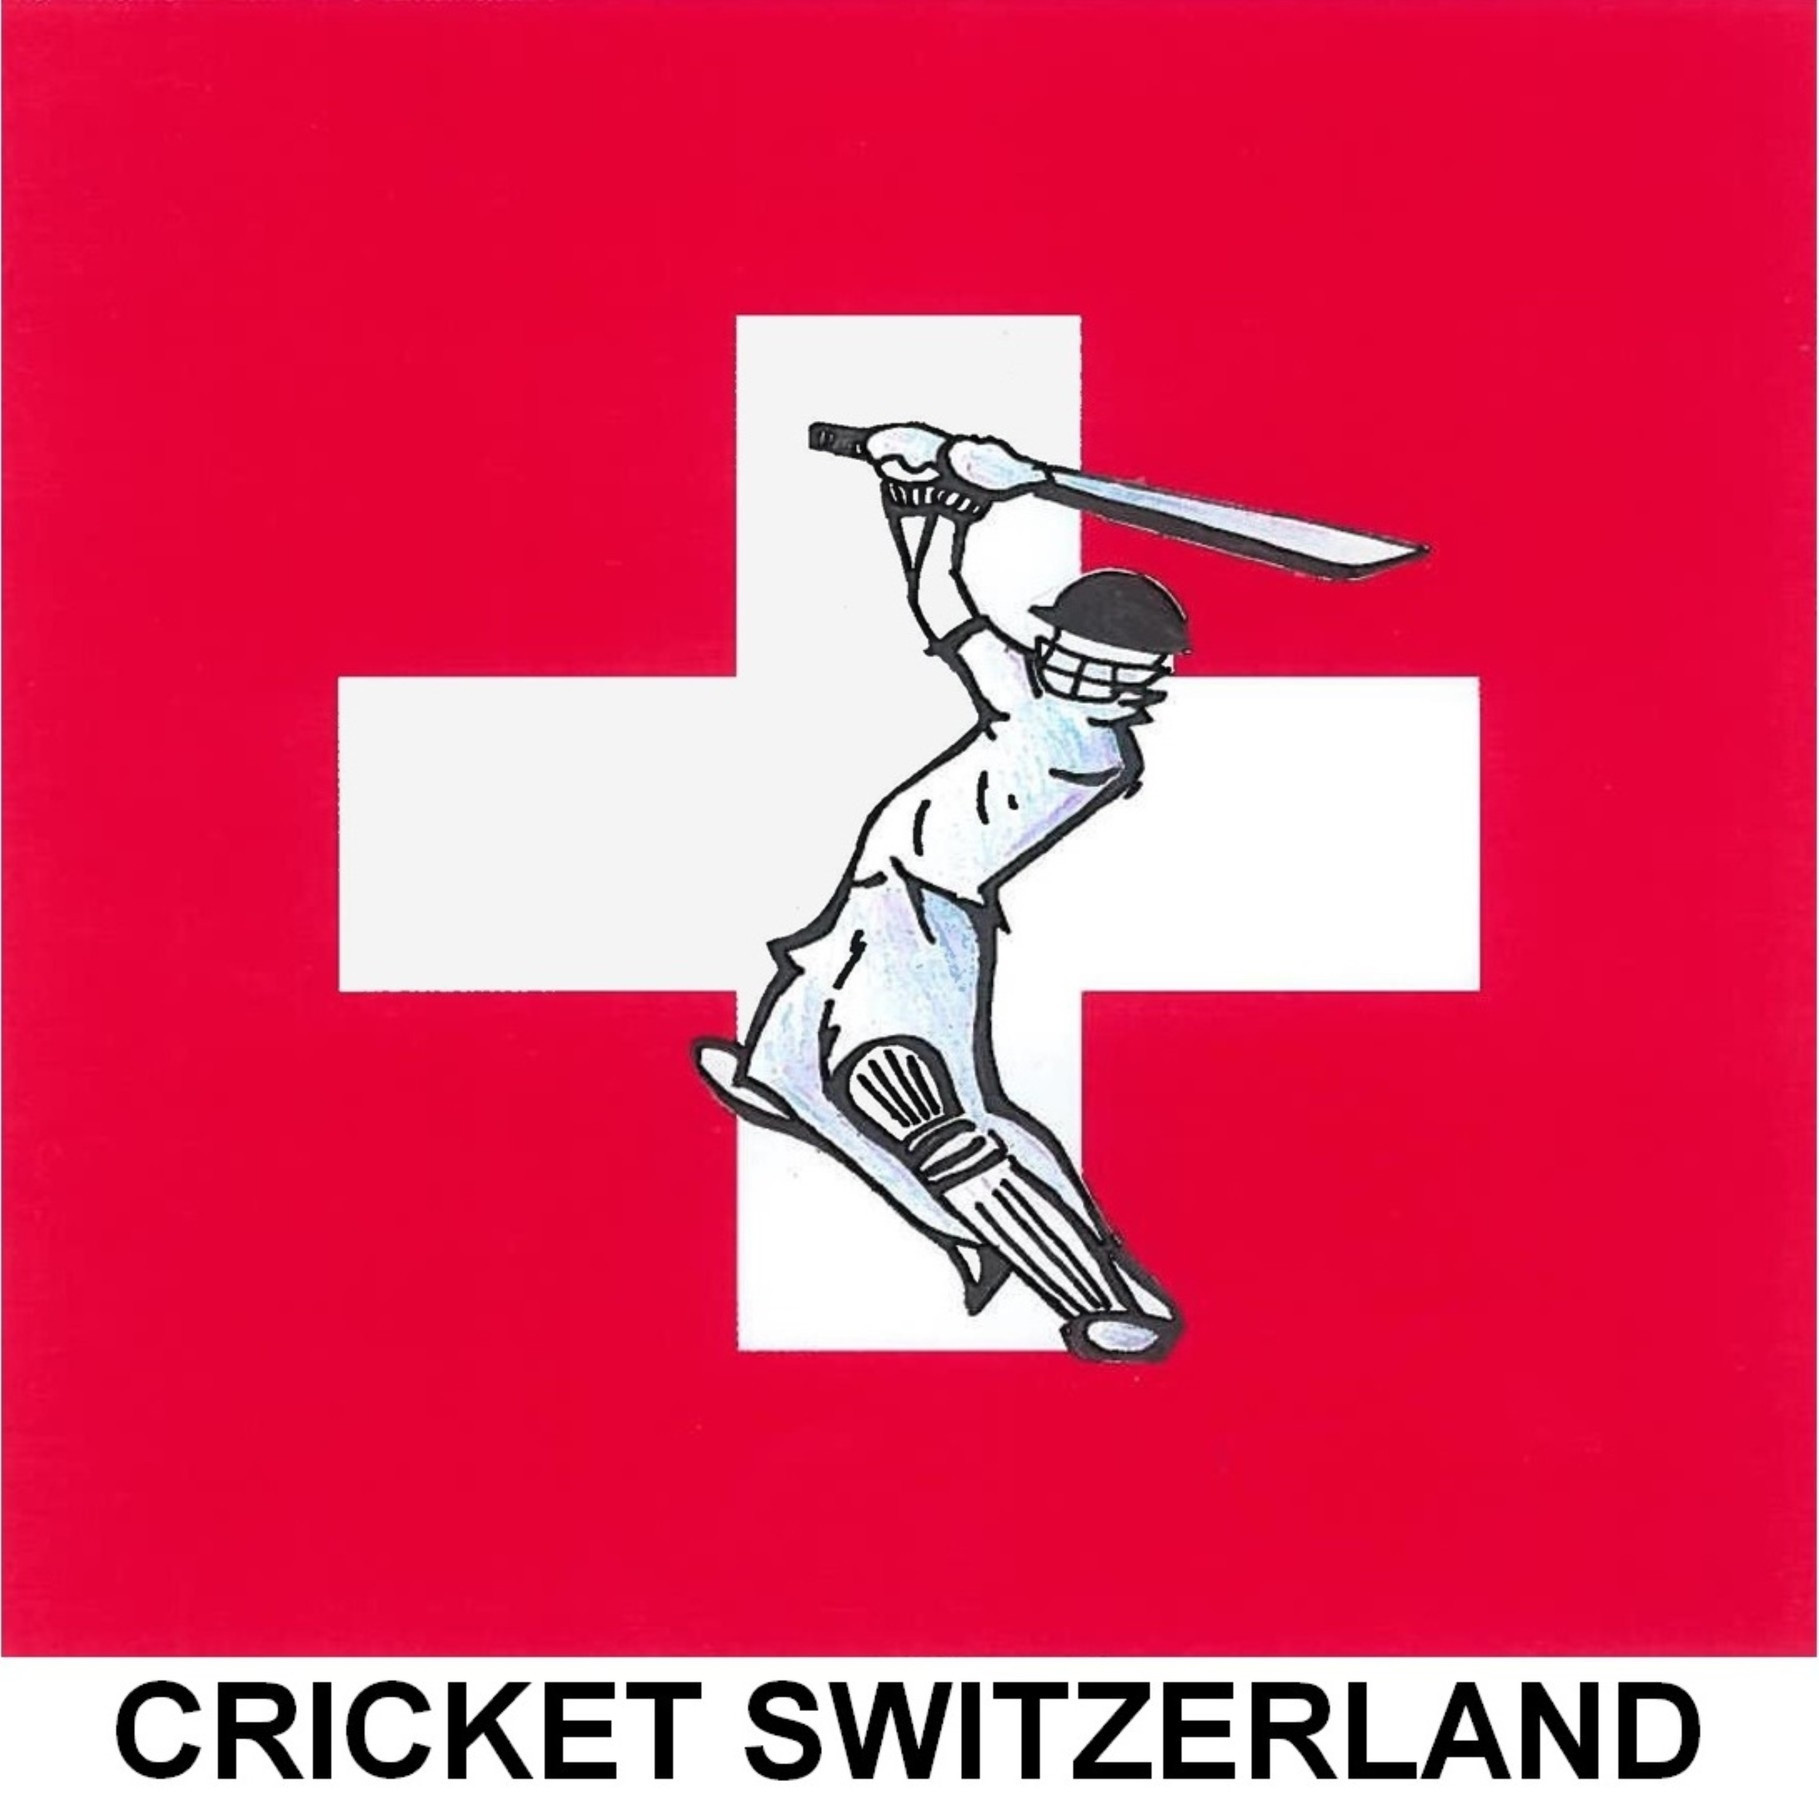 Cricket Switzerland is set to submit an application to the ICC for associate membership ©Cricket Switzerland